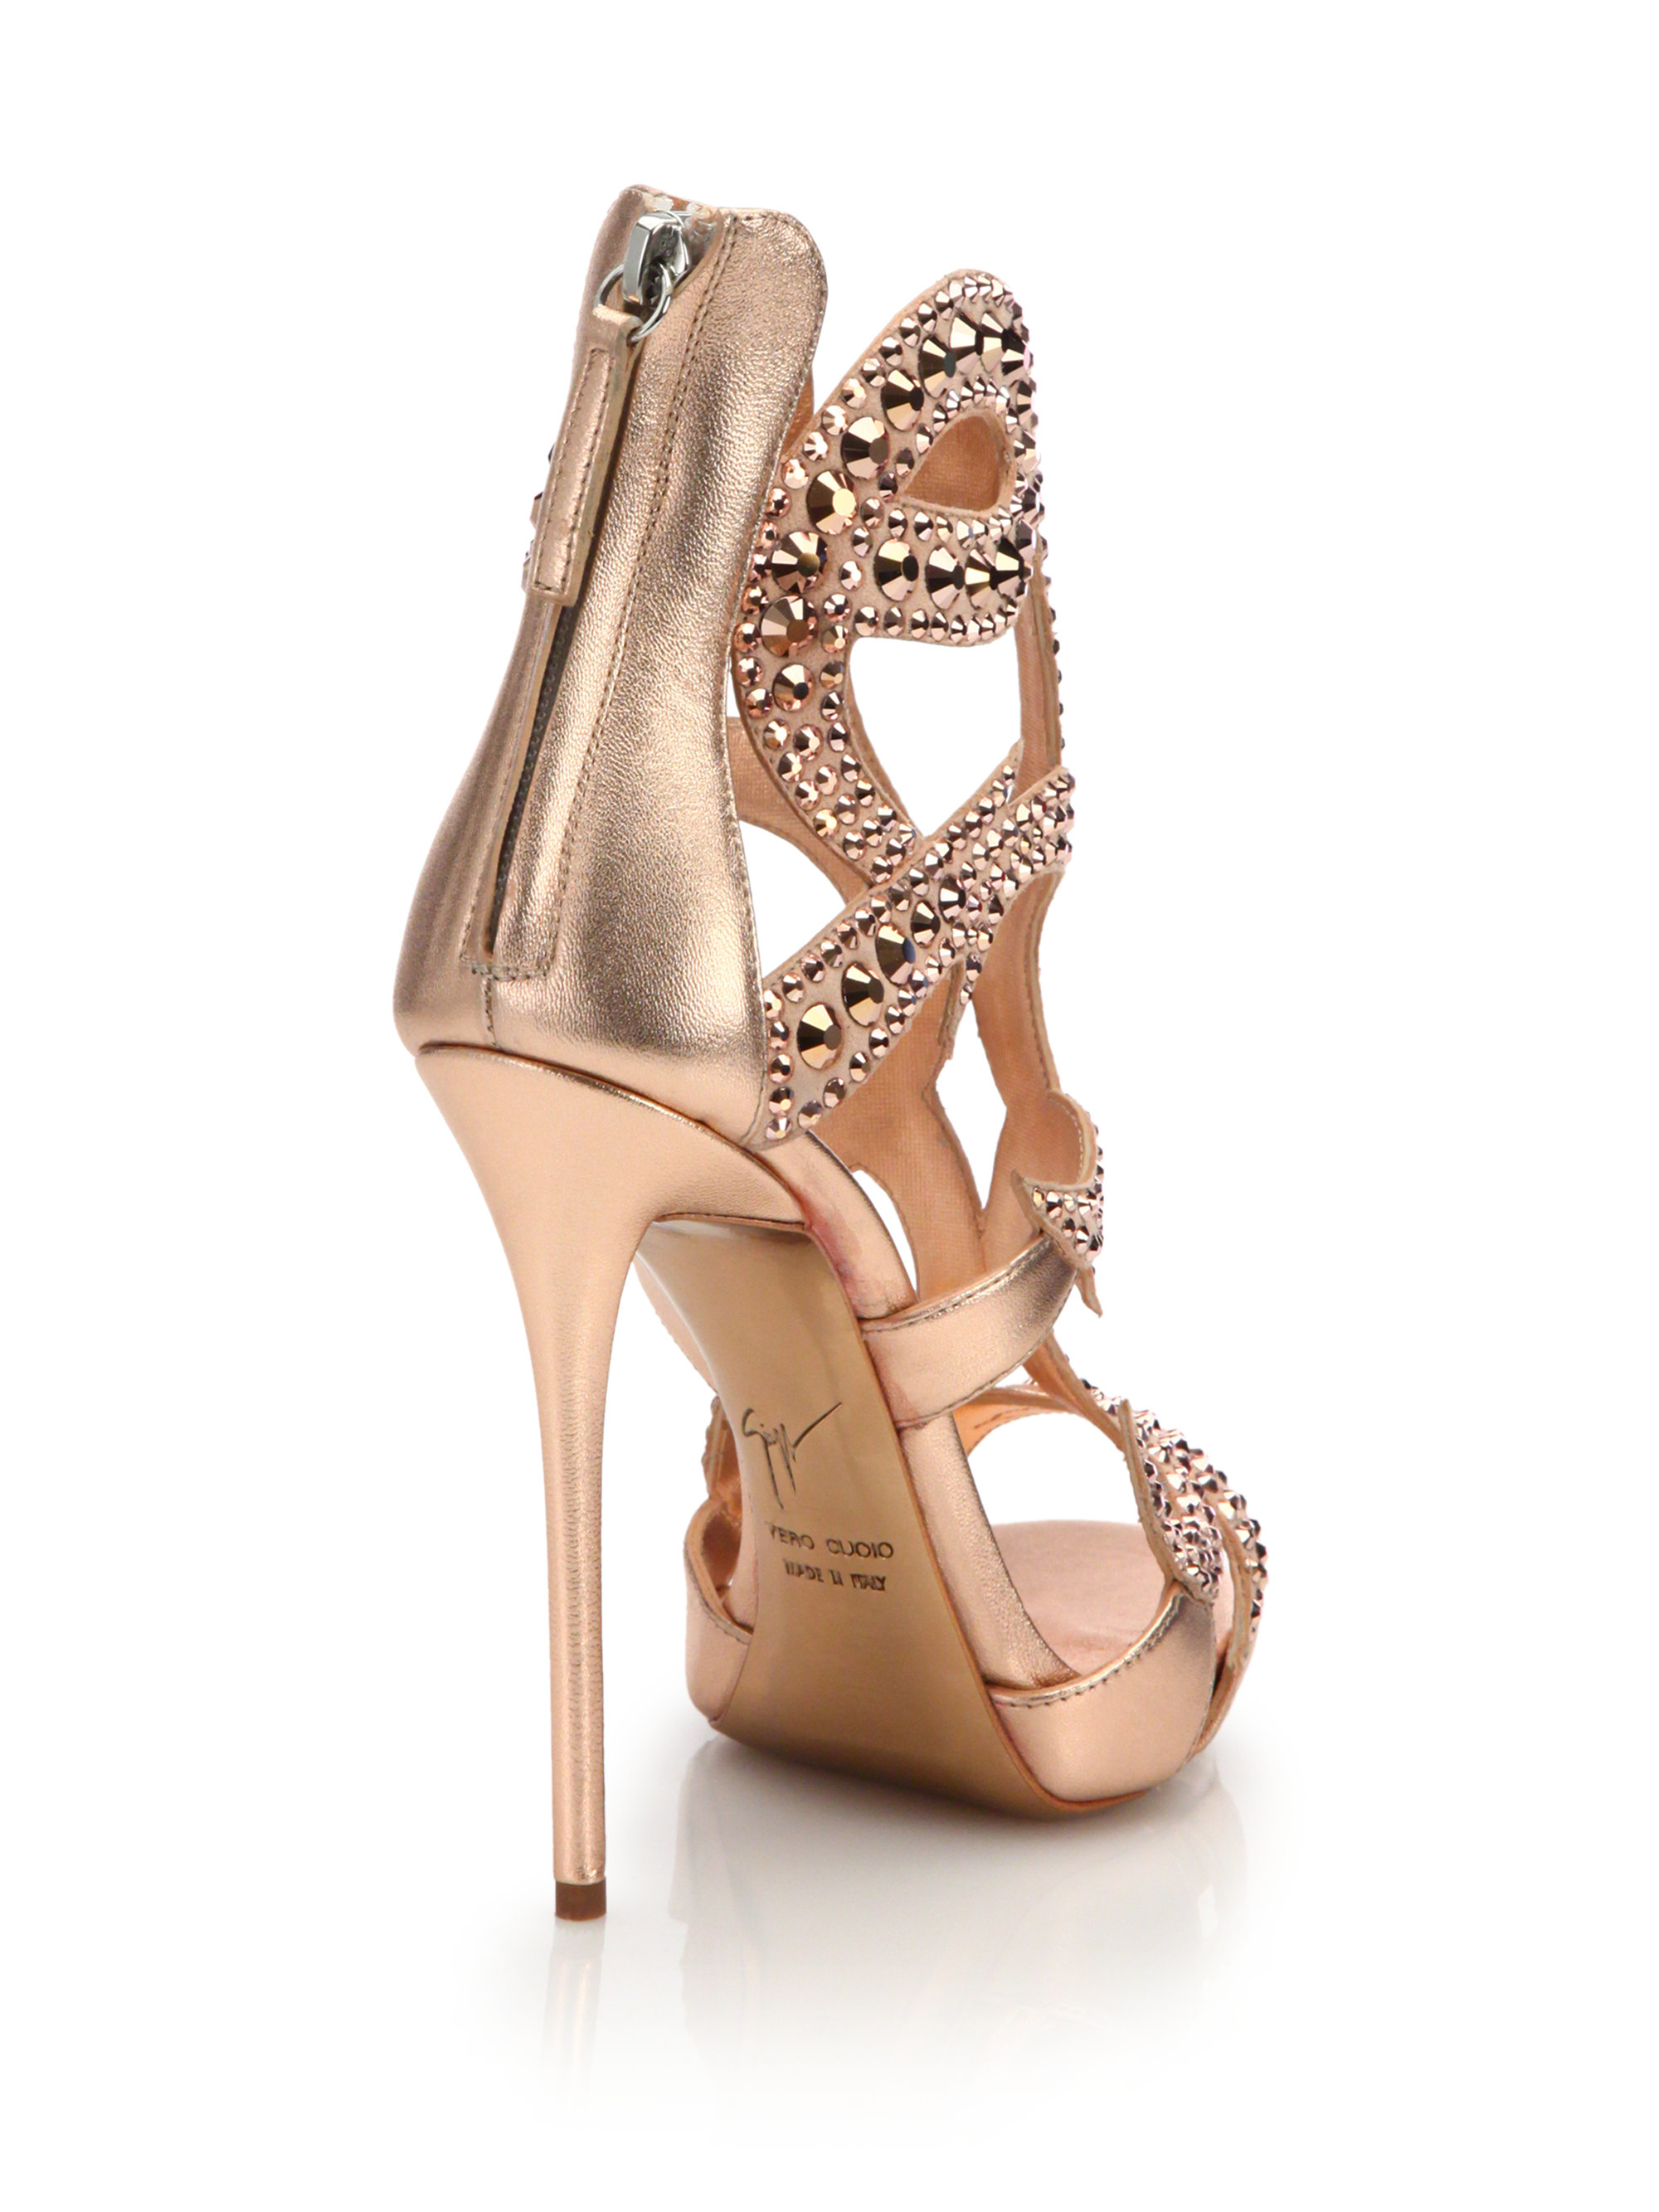 f0531c875c8 Lyst - Giuseppe Zanotti Crystal-embellished Metallic Leather Sandals in Pink